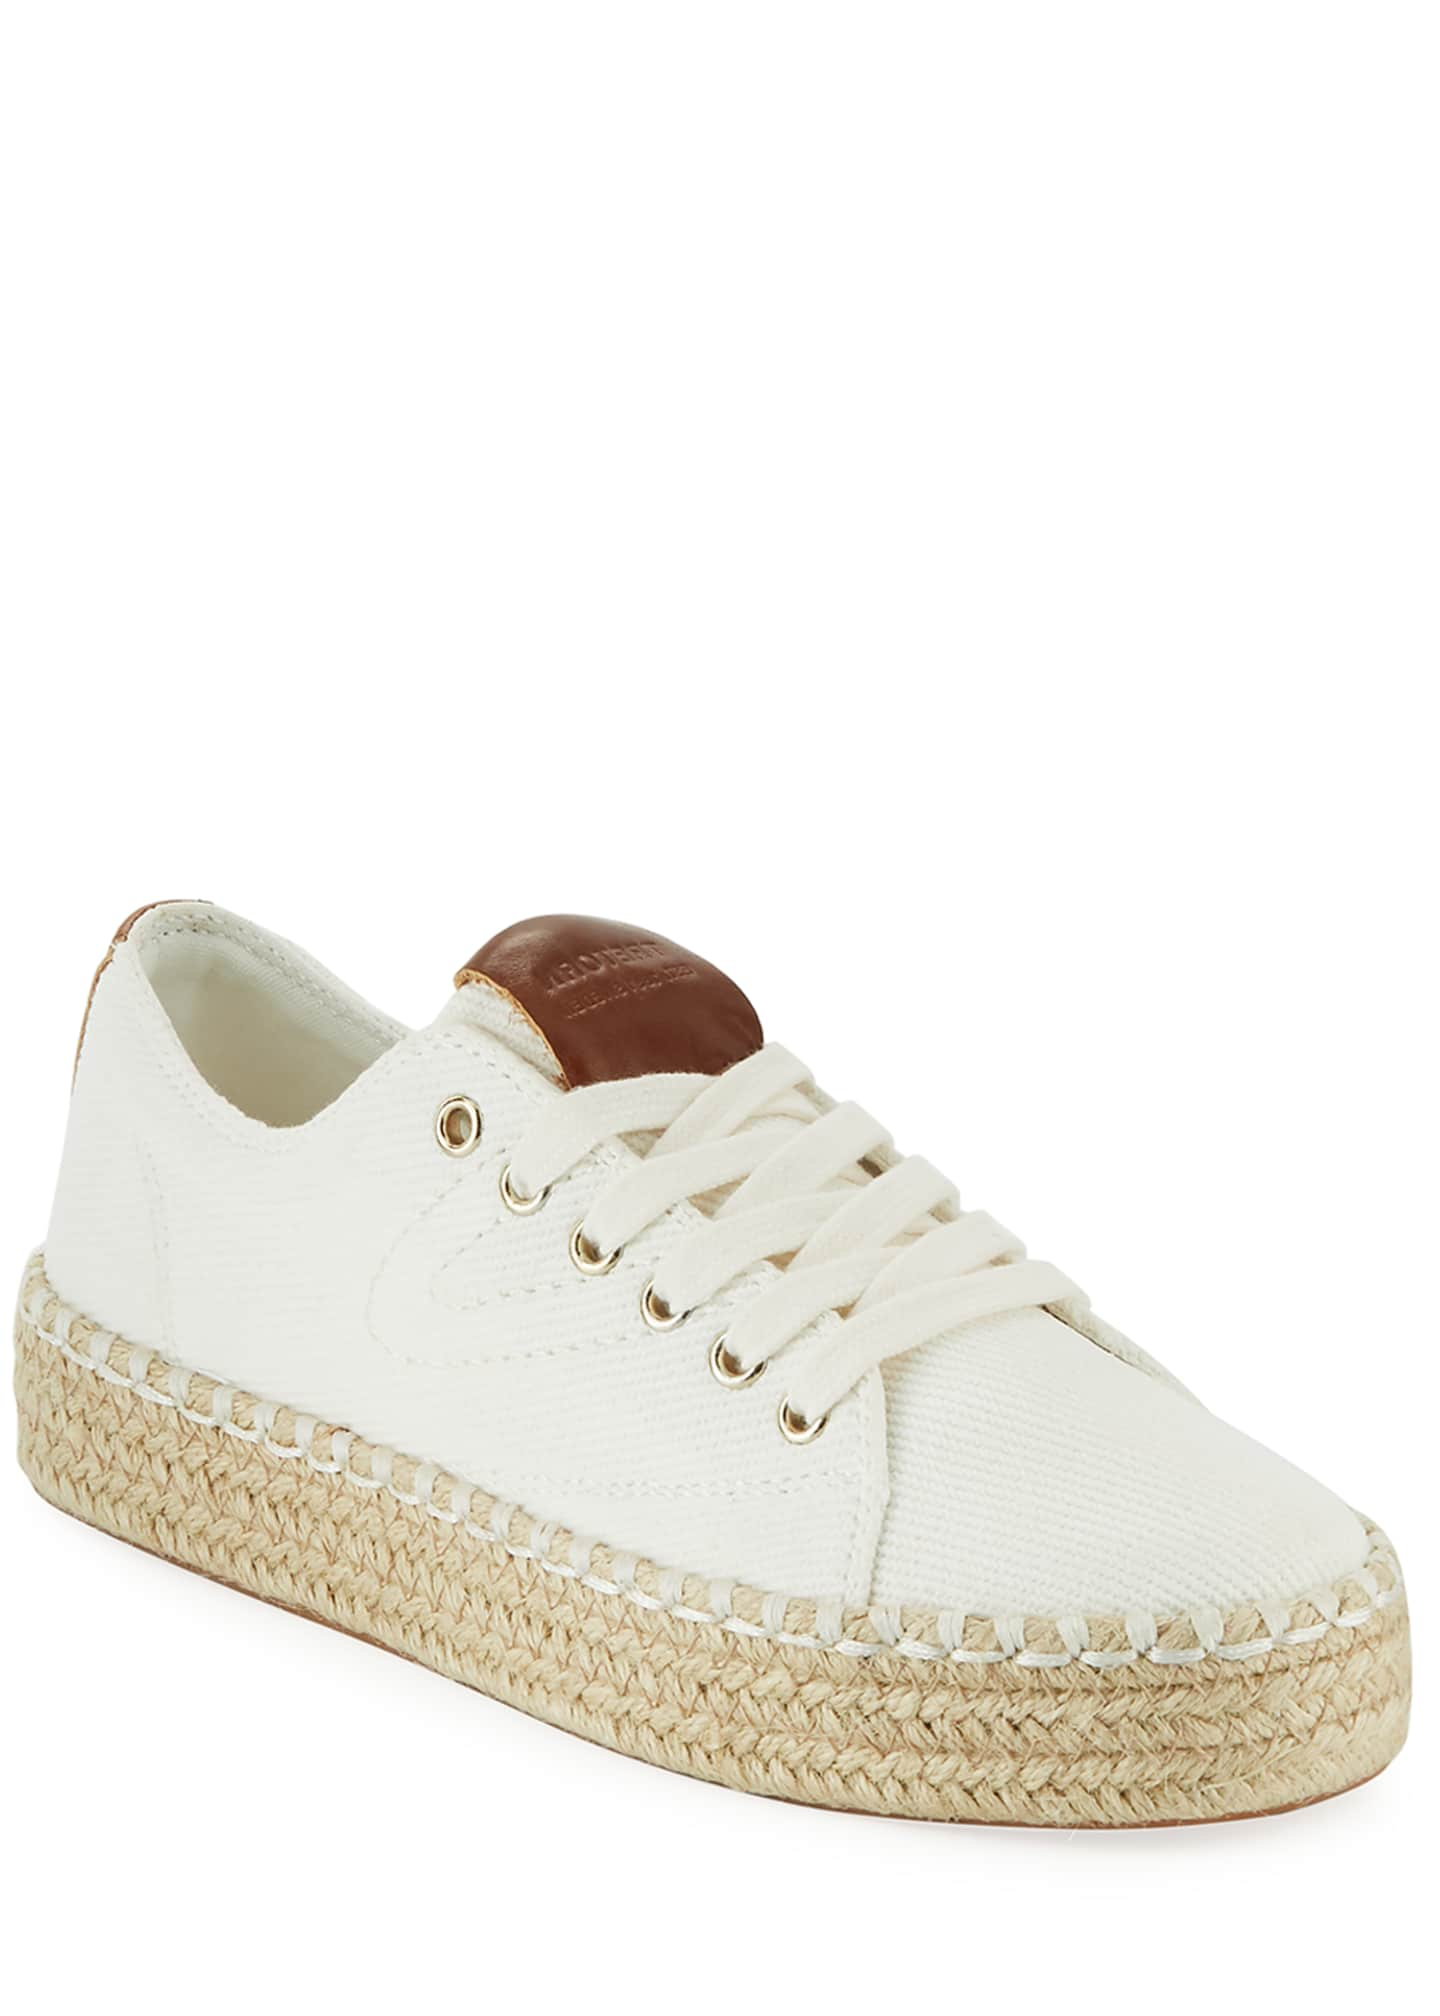 Image 1 of 5: Eve Canvas Espadrille Platform Sneakers